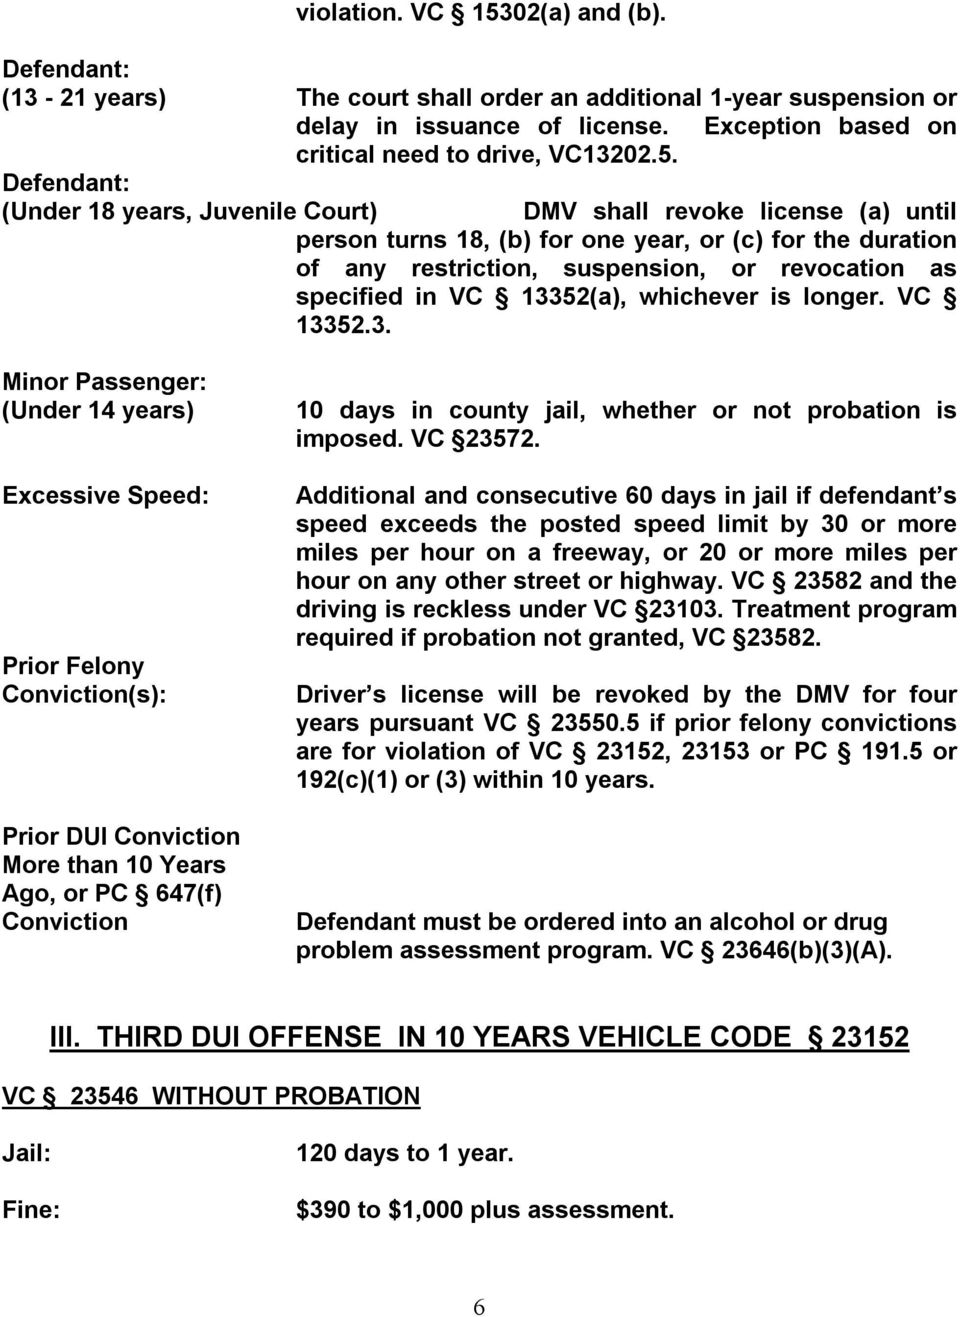 (Under 18 years, Juvenile Court) DMV shall revoke license (a) until person turns 18, (b) for one year, or (c) for the duration of any restriction, suspension, or revocation as specified in VC